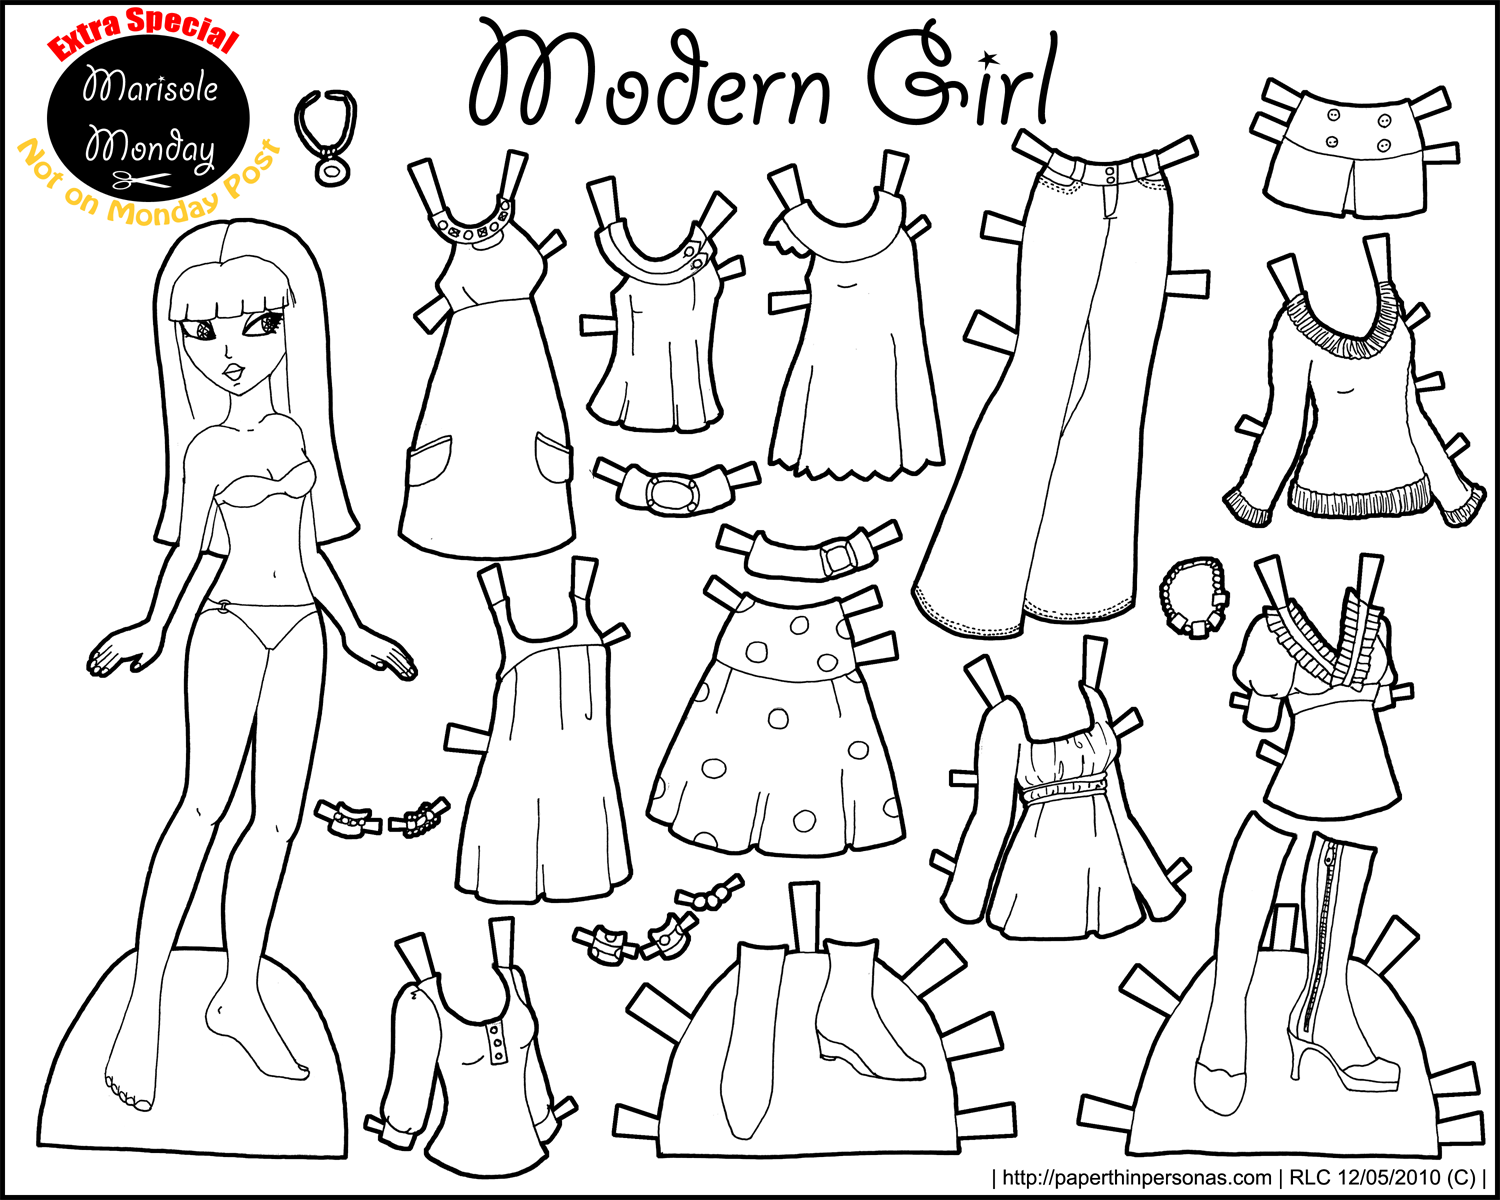 photograph regarding Free Printable Paper Dolls Black and White identify Marisole Monday: Innovative Woman Inside Black White Coloring